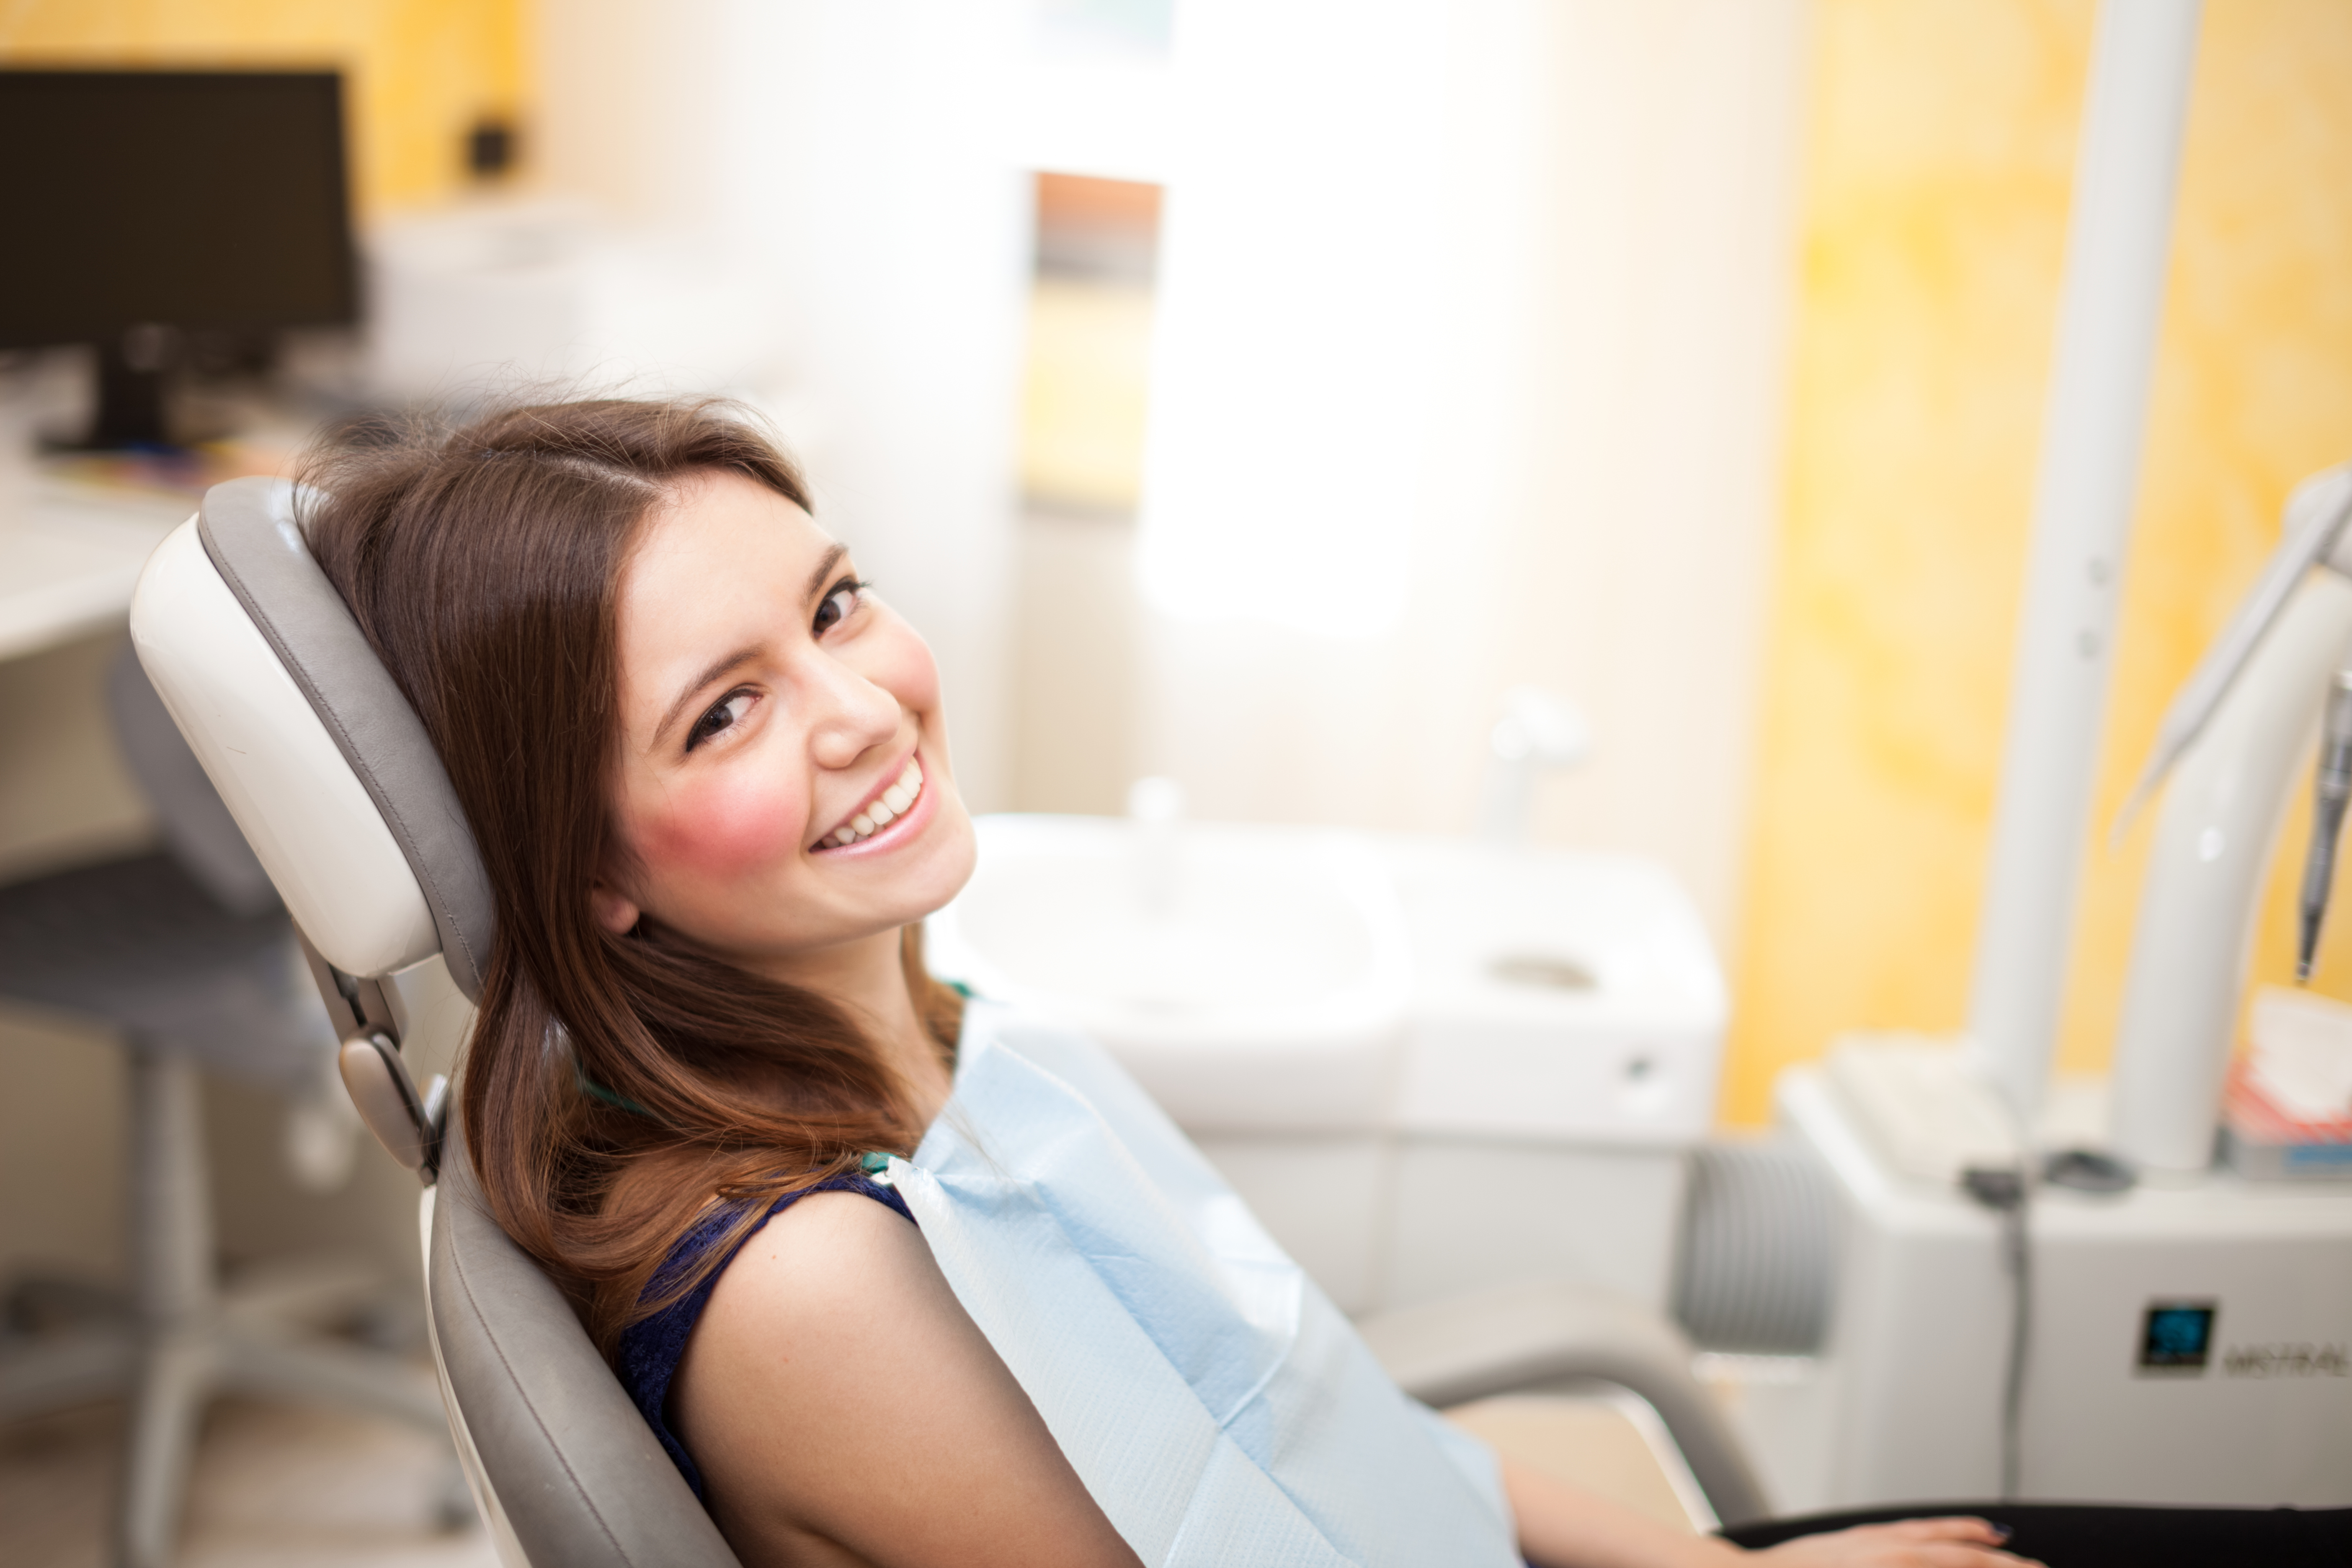 Clinica dental Majadahonda